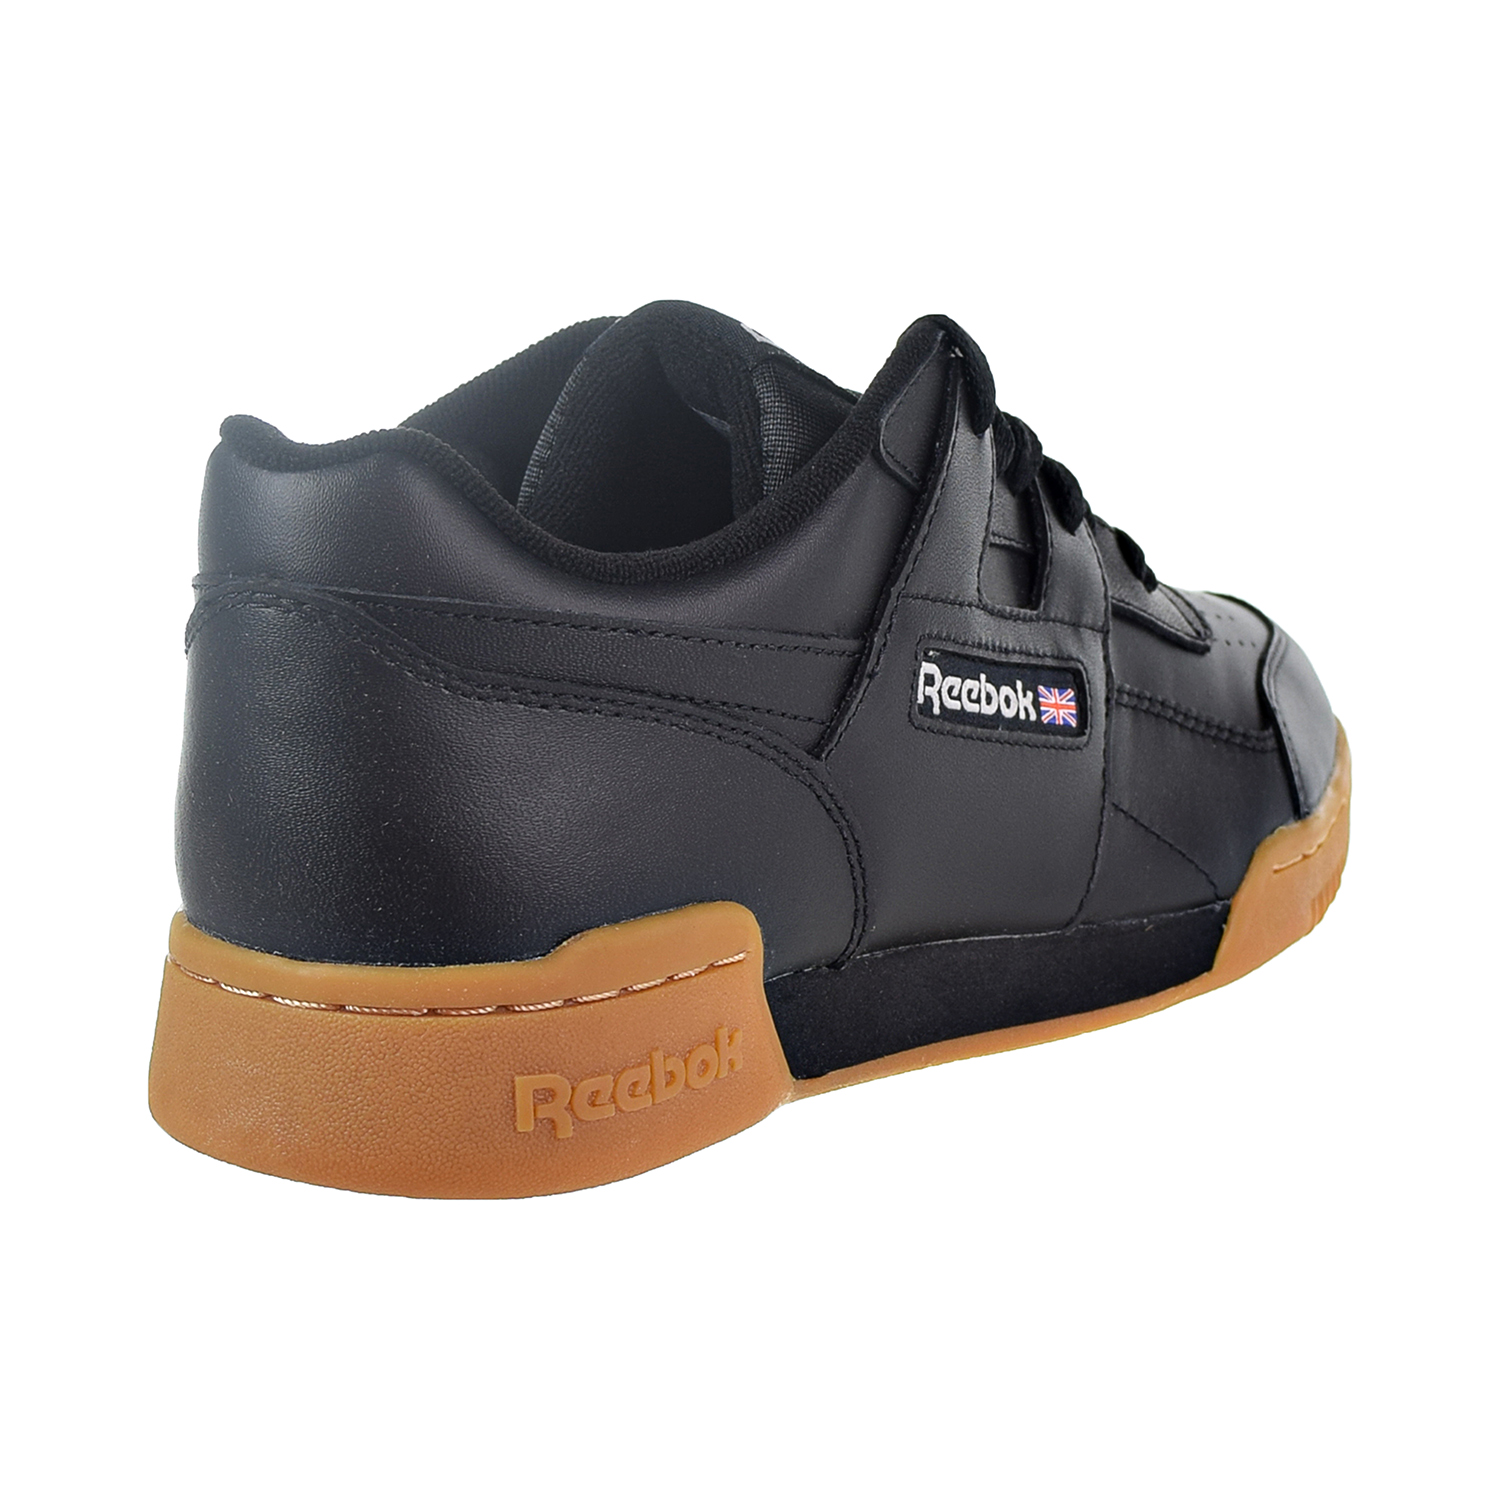 7e78ed77128d6 Reebok Workout Plus Men s Shoes Black Carbon Classic Red Reebok Royal cn2127